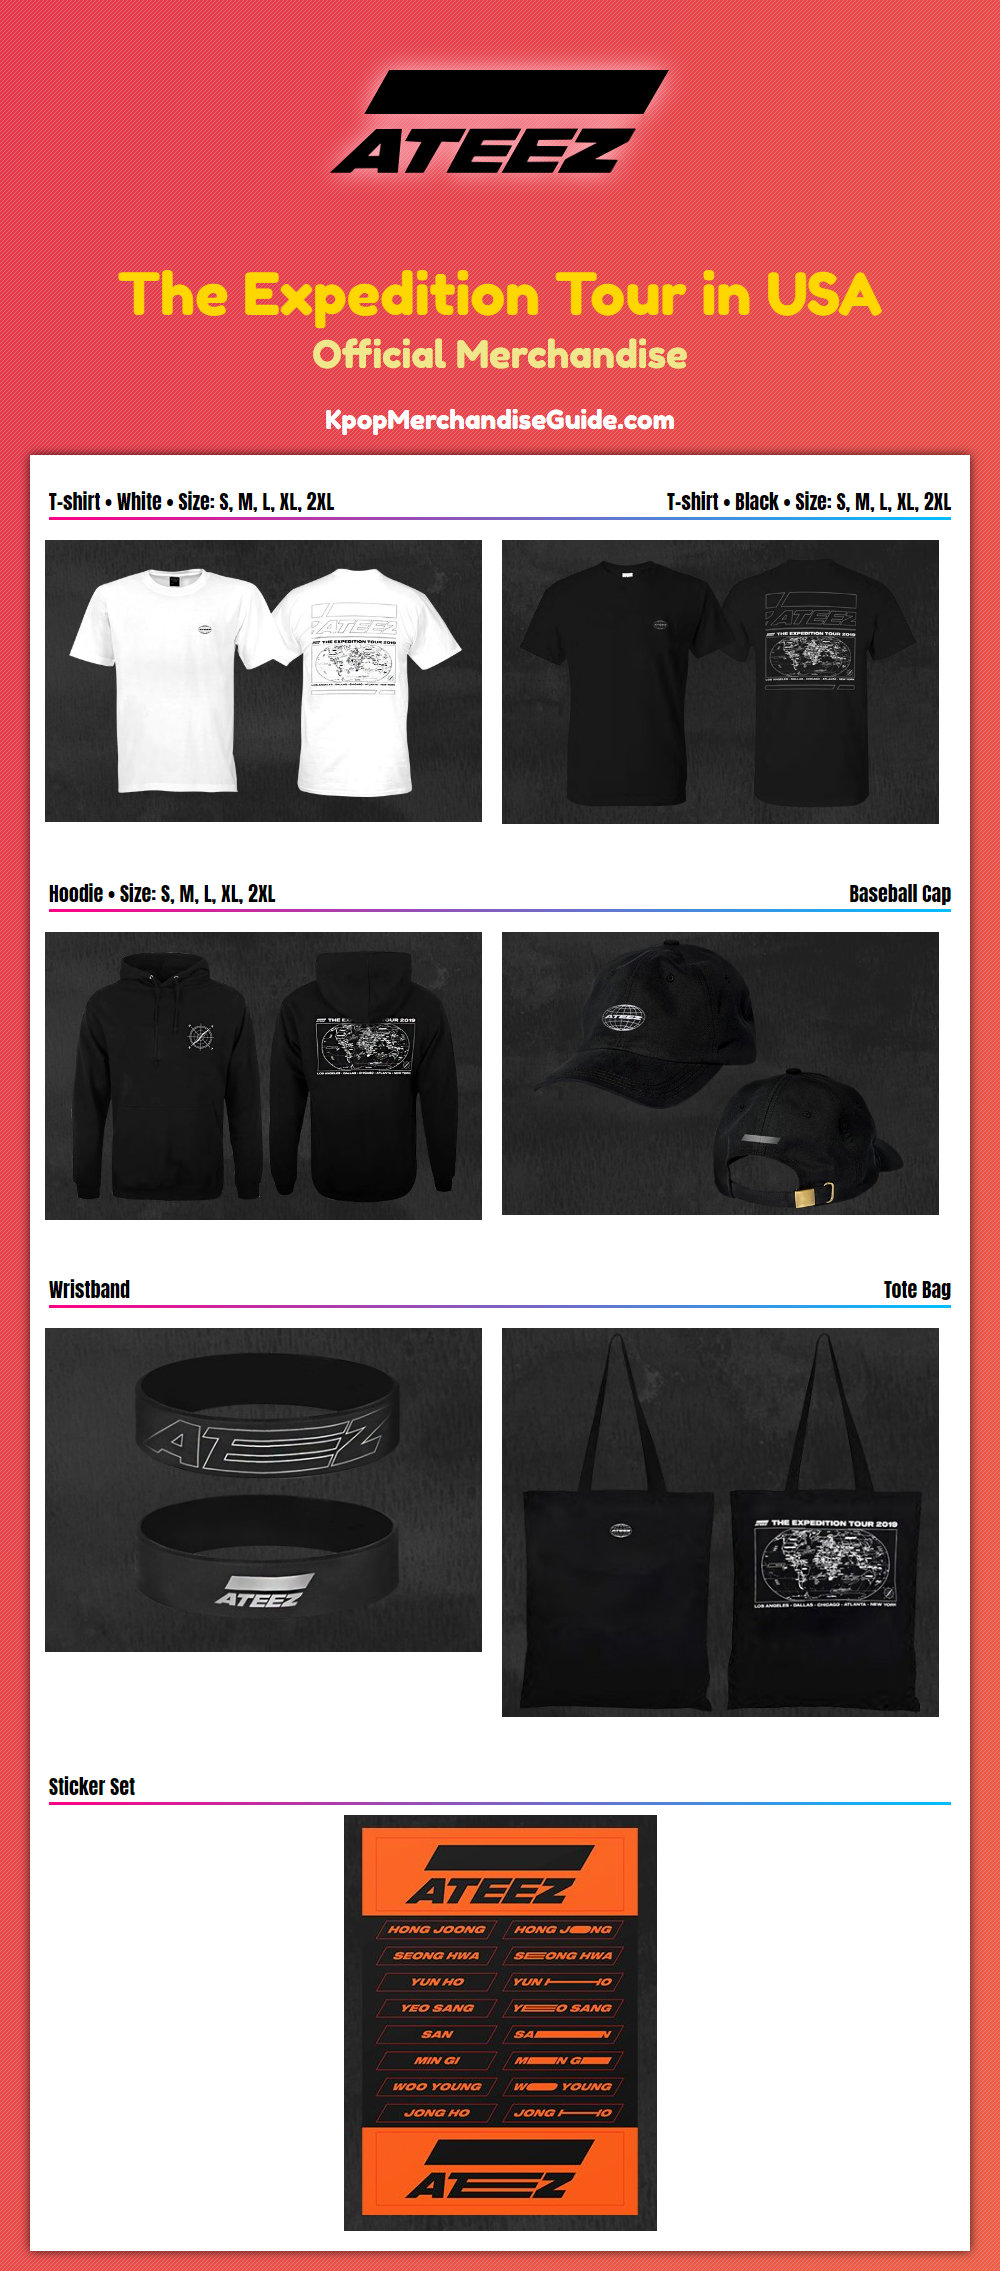 Ateez The Expedition Tour In USA Merchandise